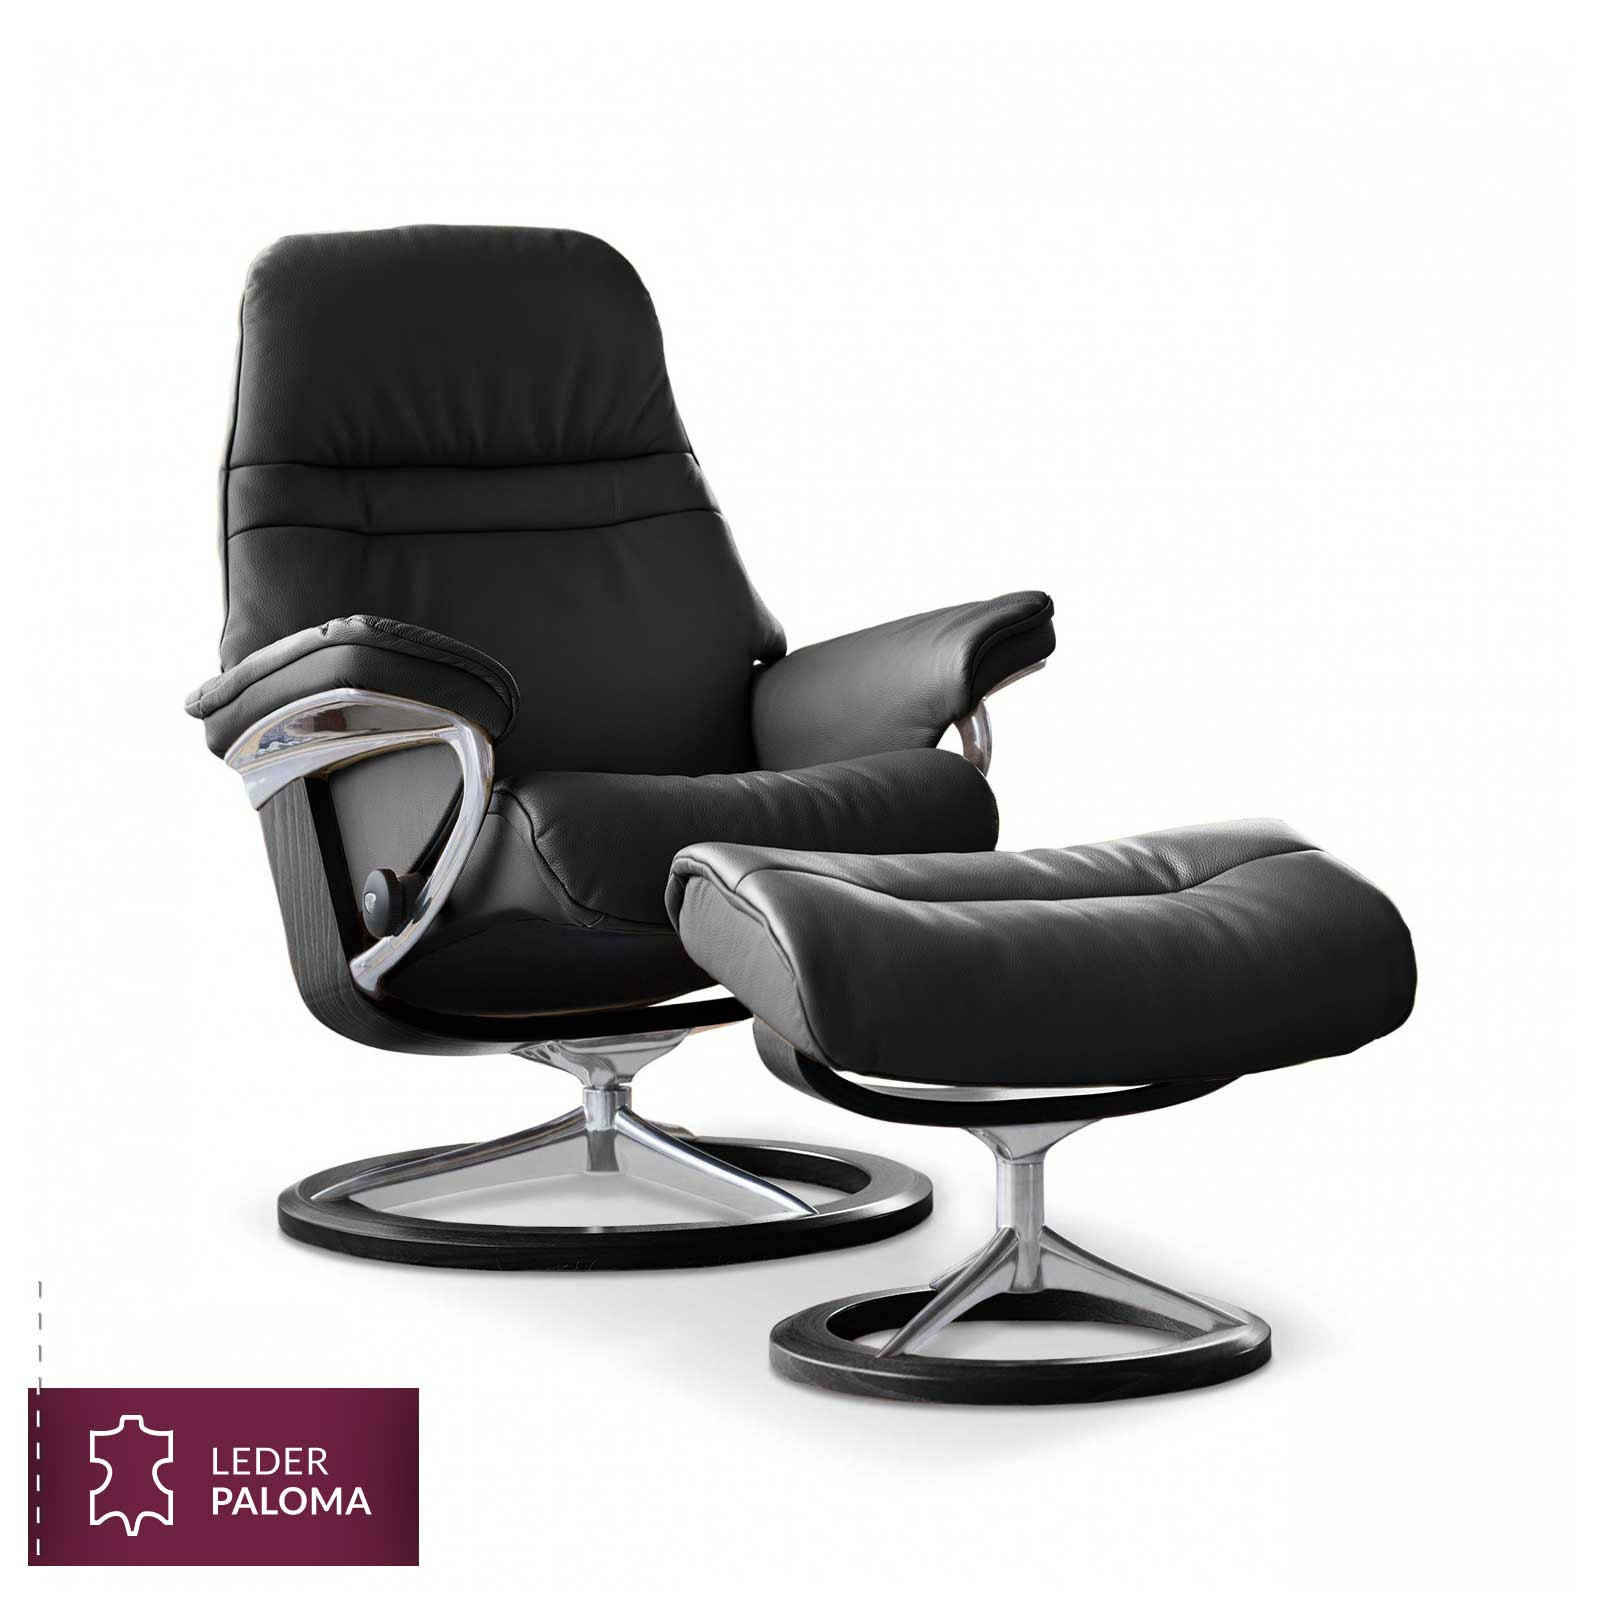 stressless sunrise signature sessel paloma black hocker stressless. Black Bedroom Furniture Sets. Home Design Ideas